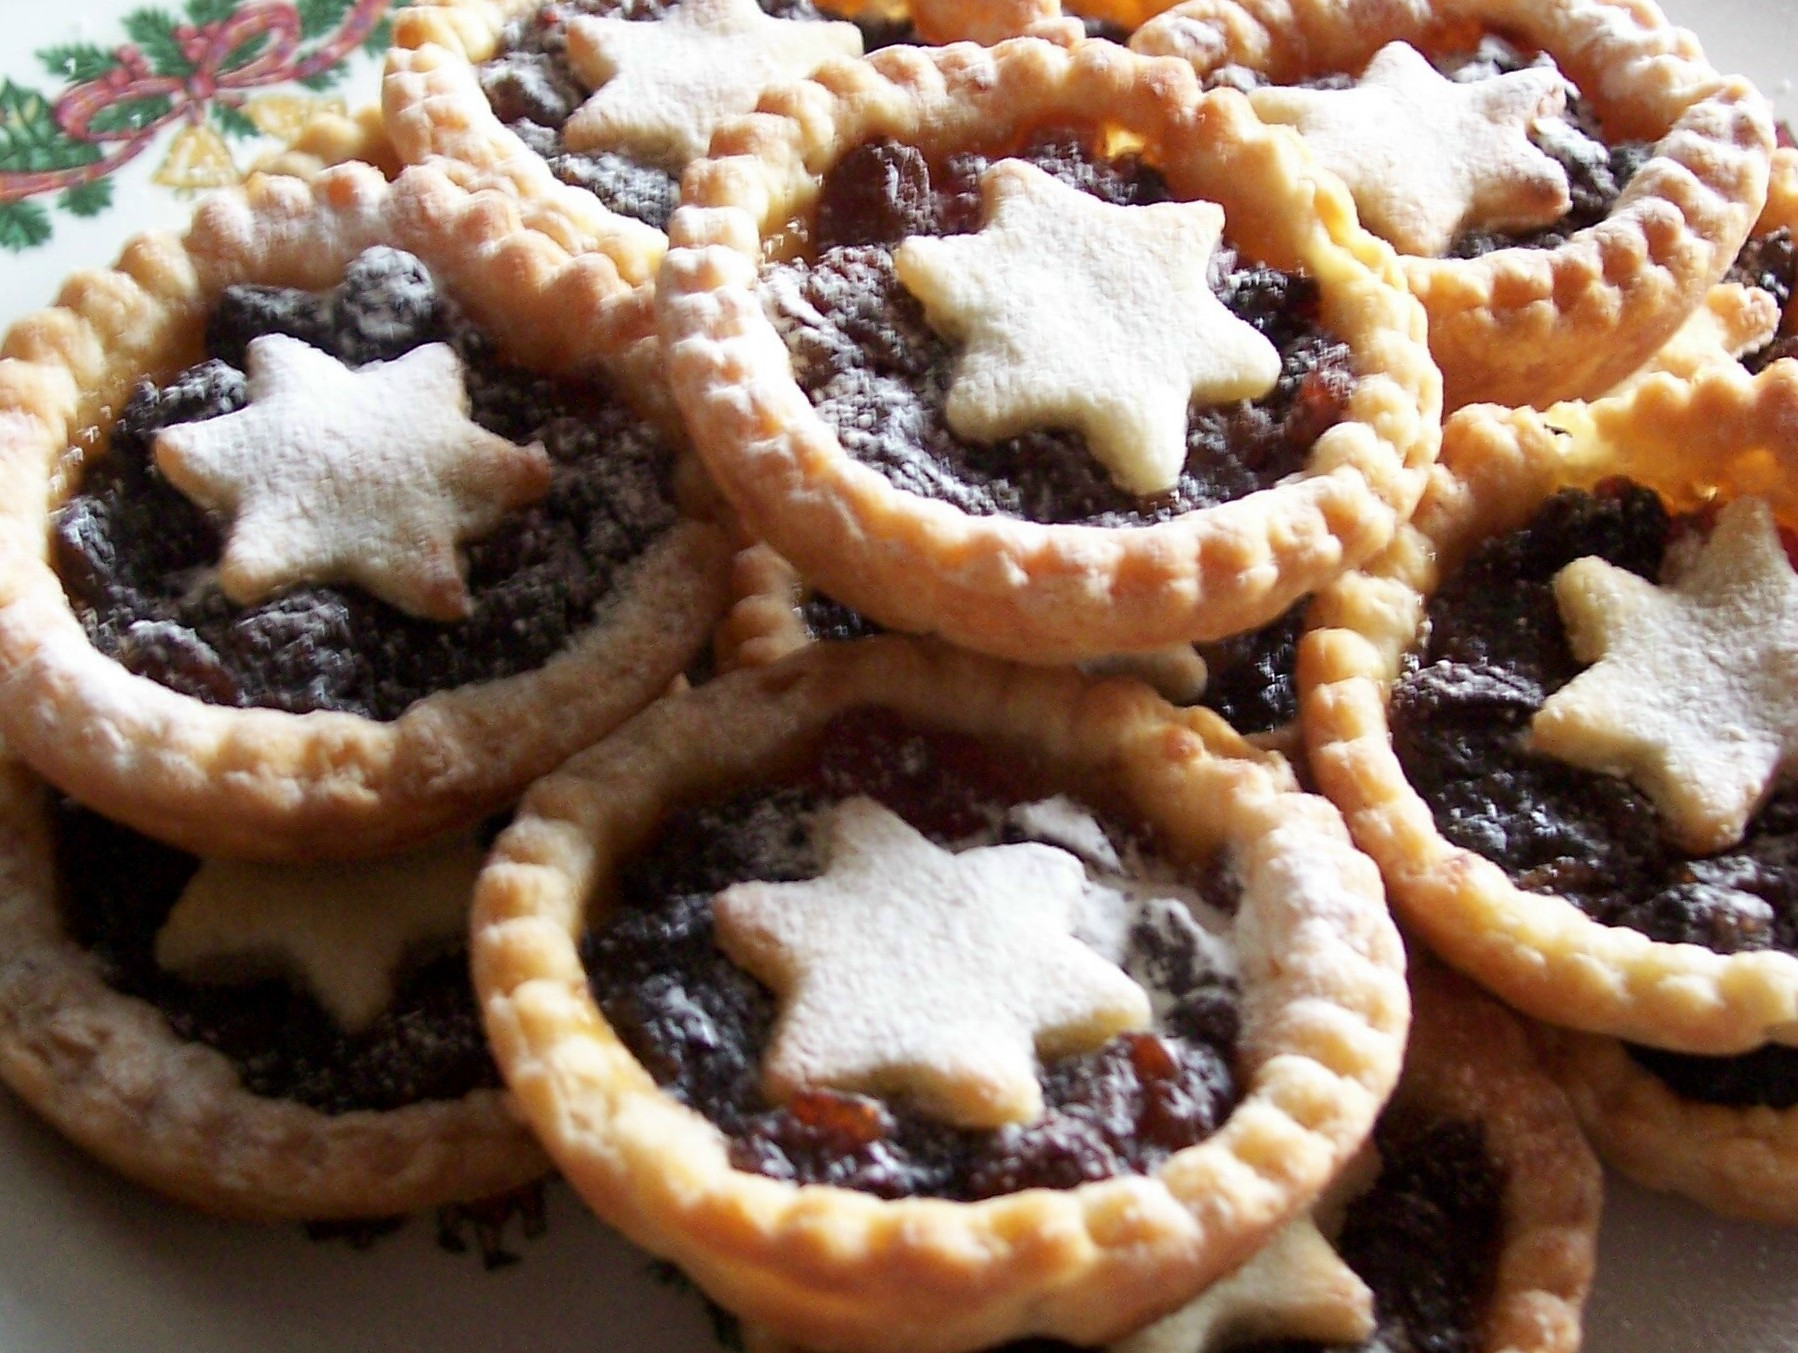 Last Minute Mincemeat & Mince Pies | Meanderings through my cookbook